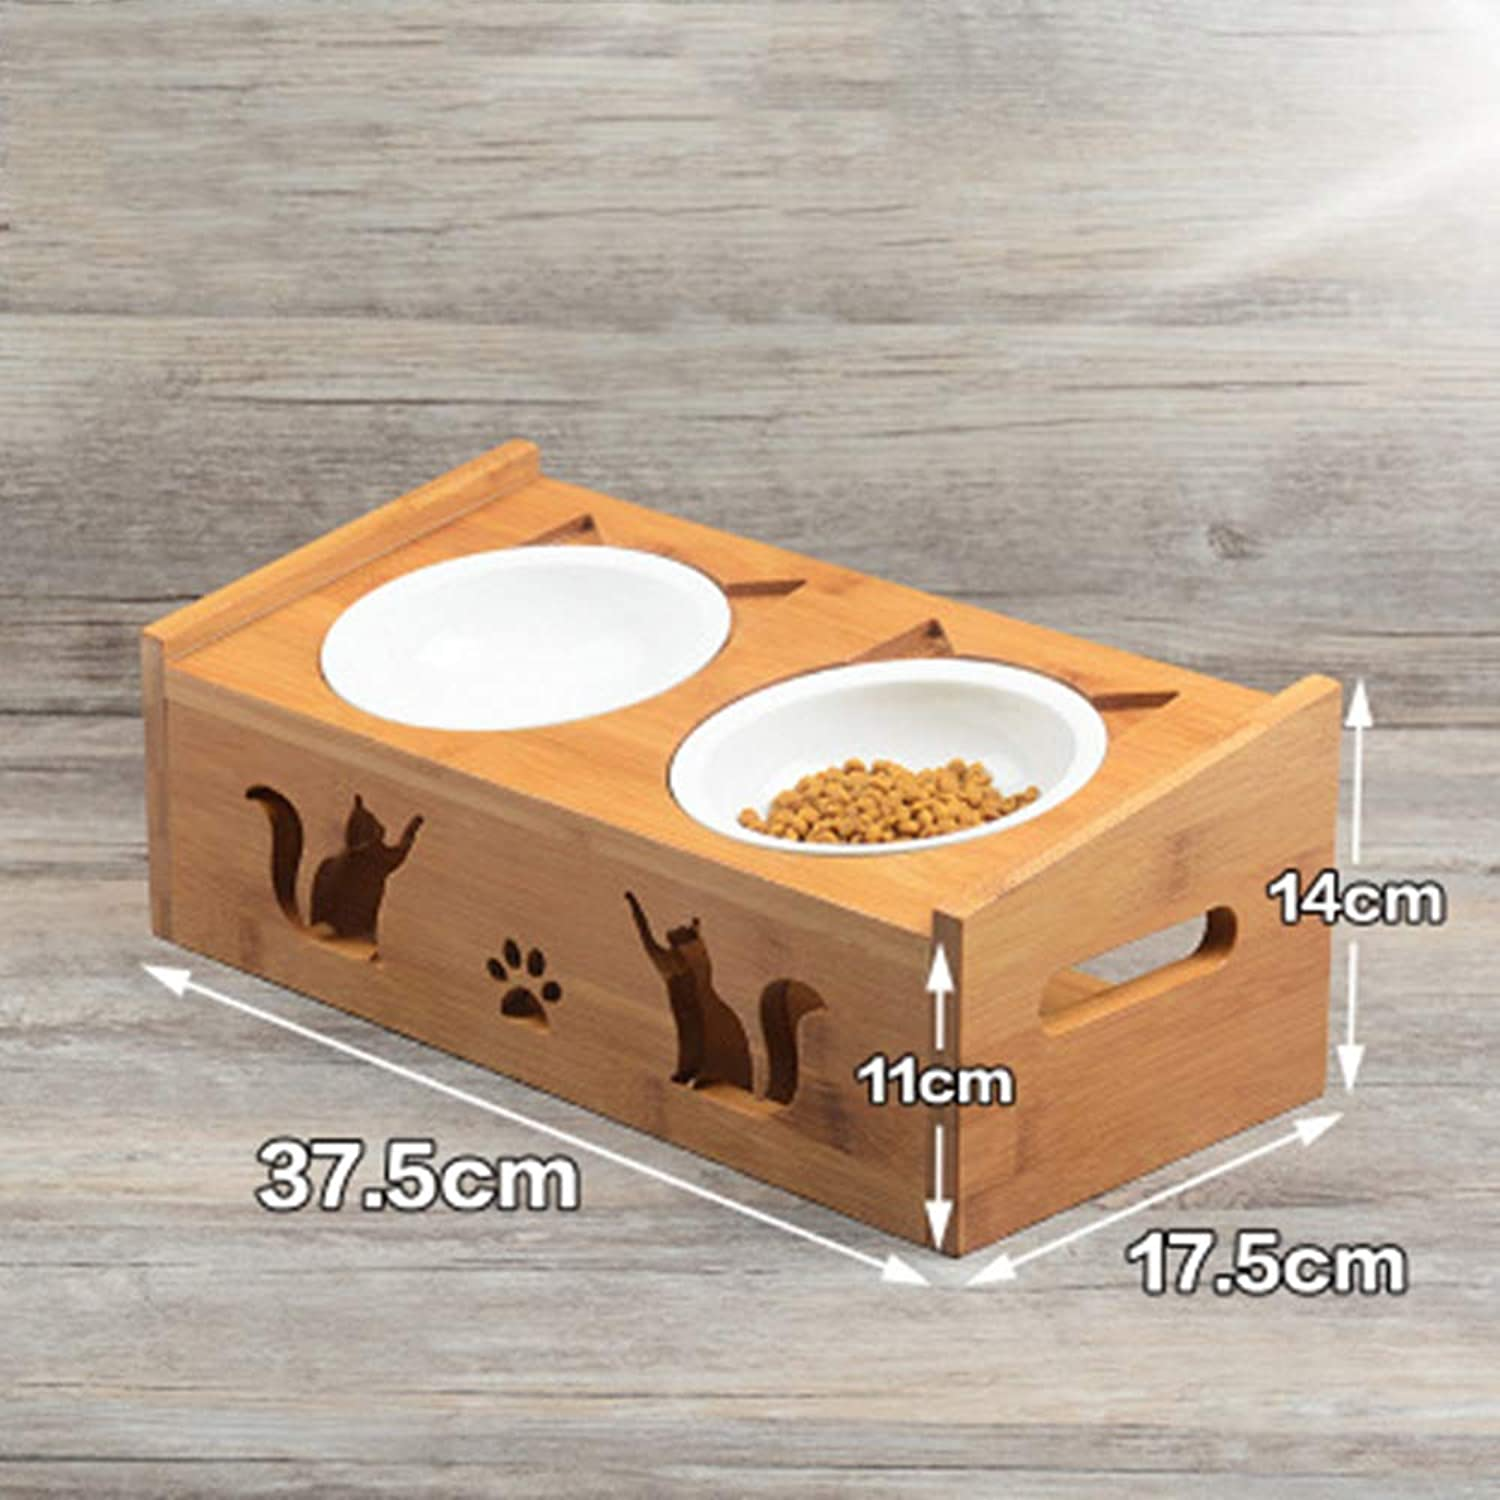 LEIYING Pet Ceramic Feeding And Water Bowls With Bamboo Frame For Dogs And Cats Dog Food Bowls Elevated Dog Cat Bowls